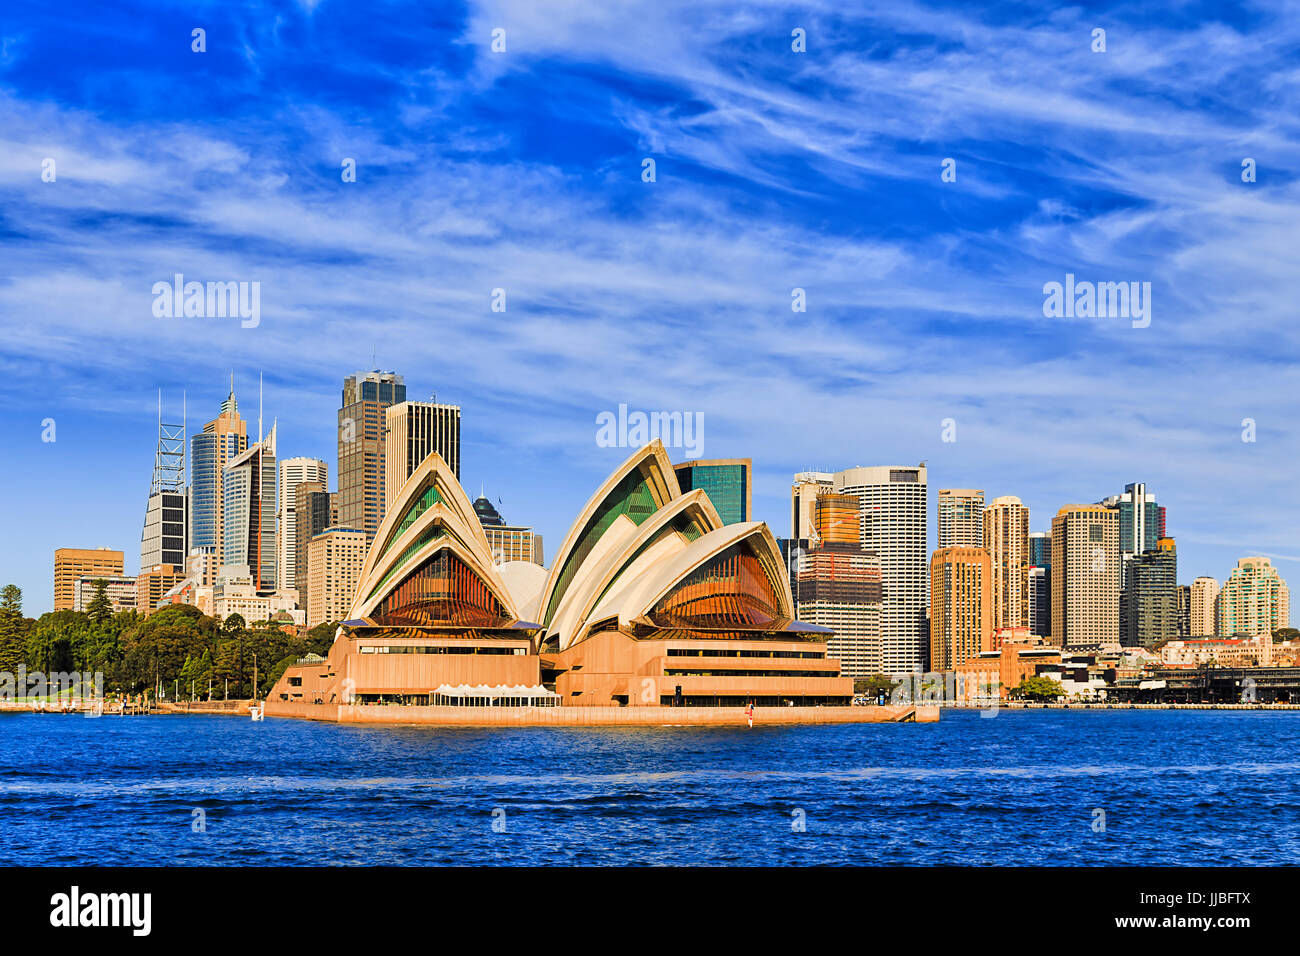 Modern cityline of Sydney city CBD landmarks as seen from passenger ferry in mid harbour on a sunny bright day under - Stock Image